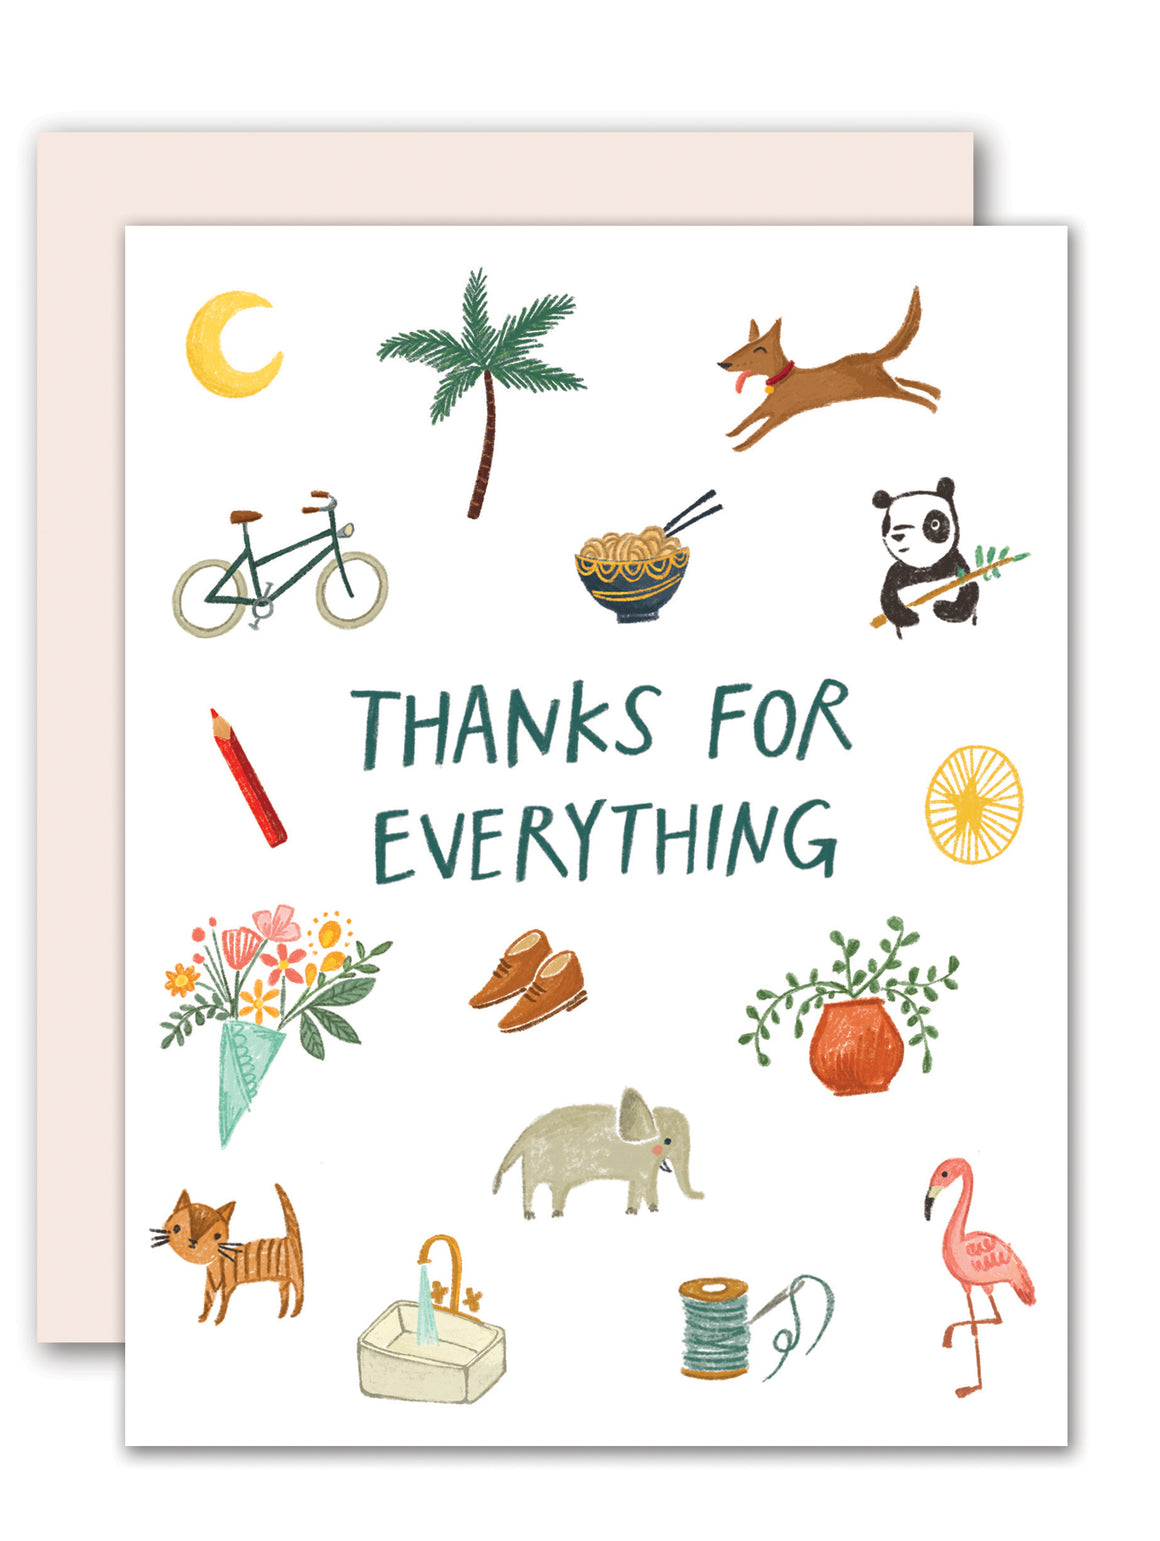 Thanks for everything! - Thank you card